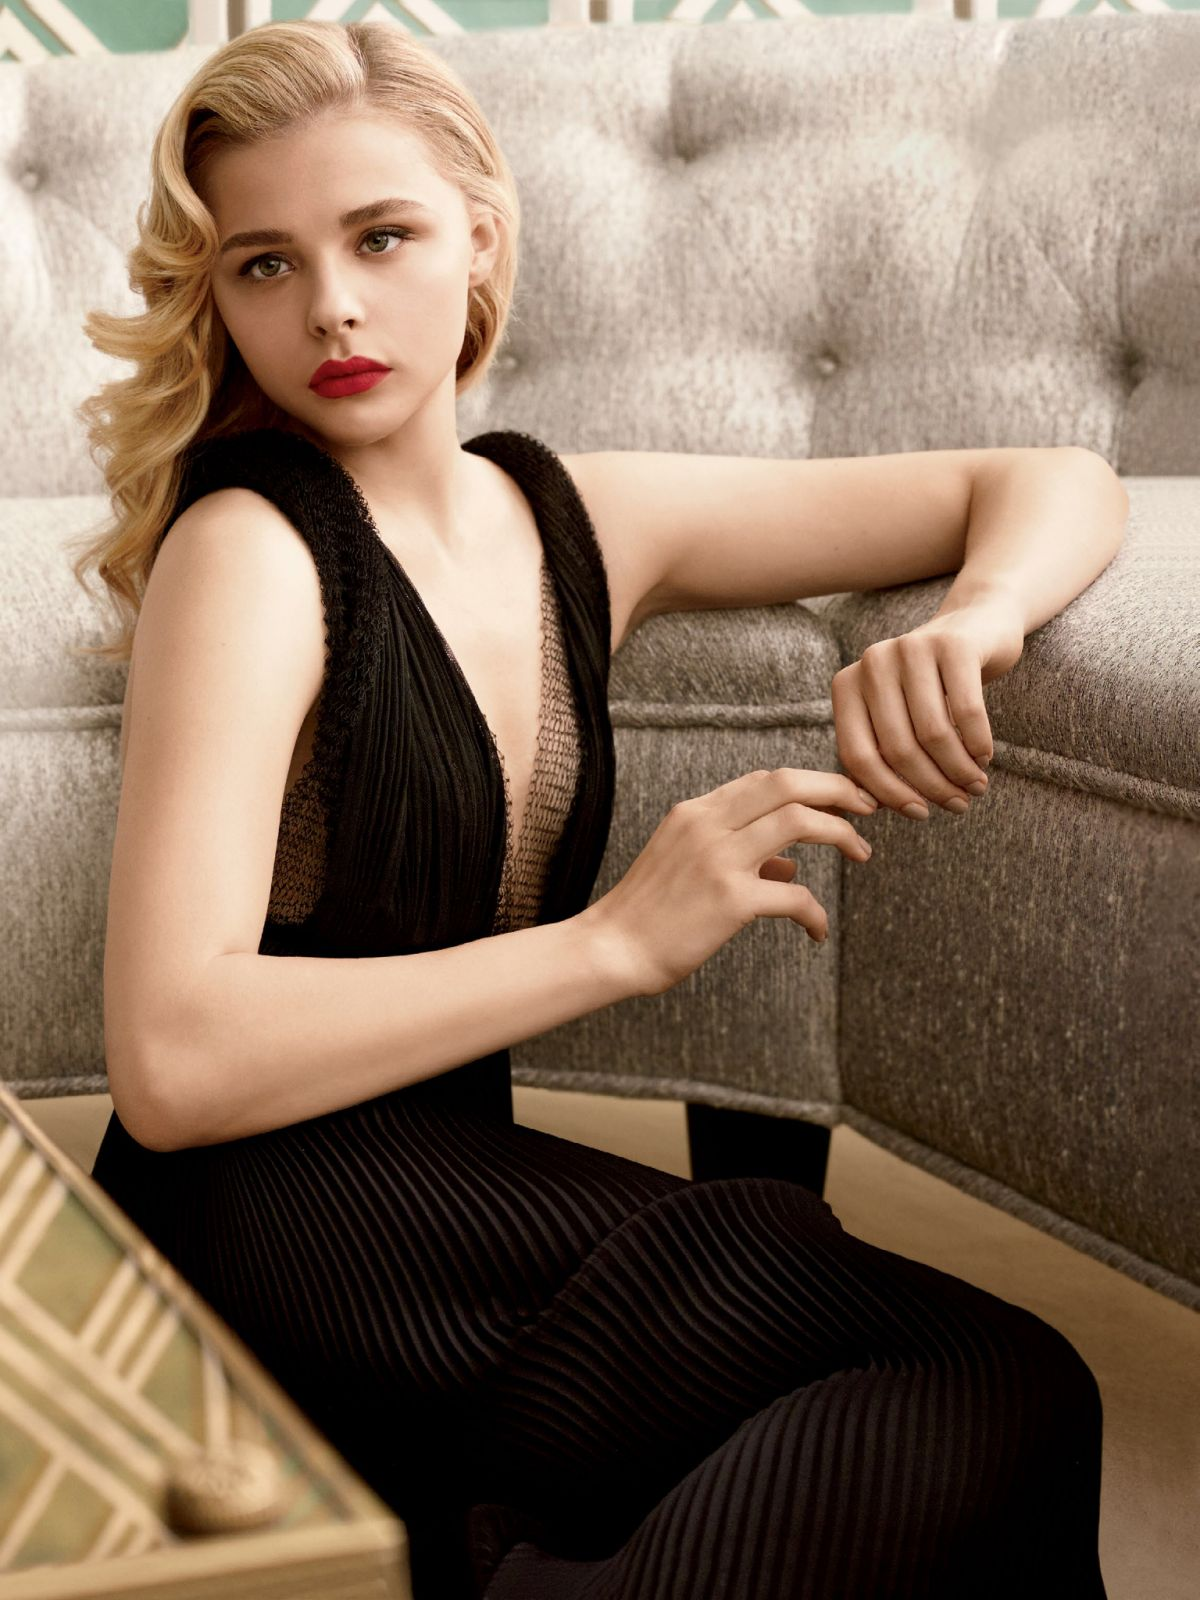 Chloe moretz hot bikini pictures sexy images videos beautiful lifestyle - Chloe moretz hot images ...